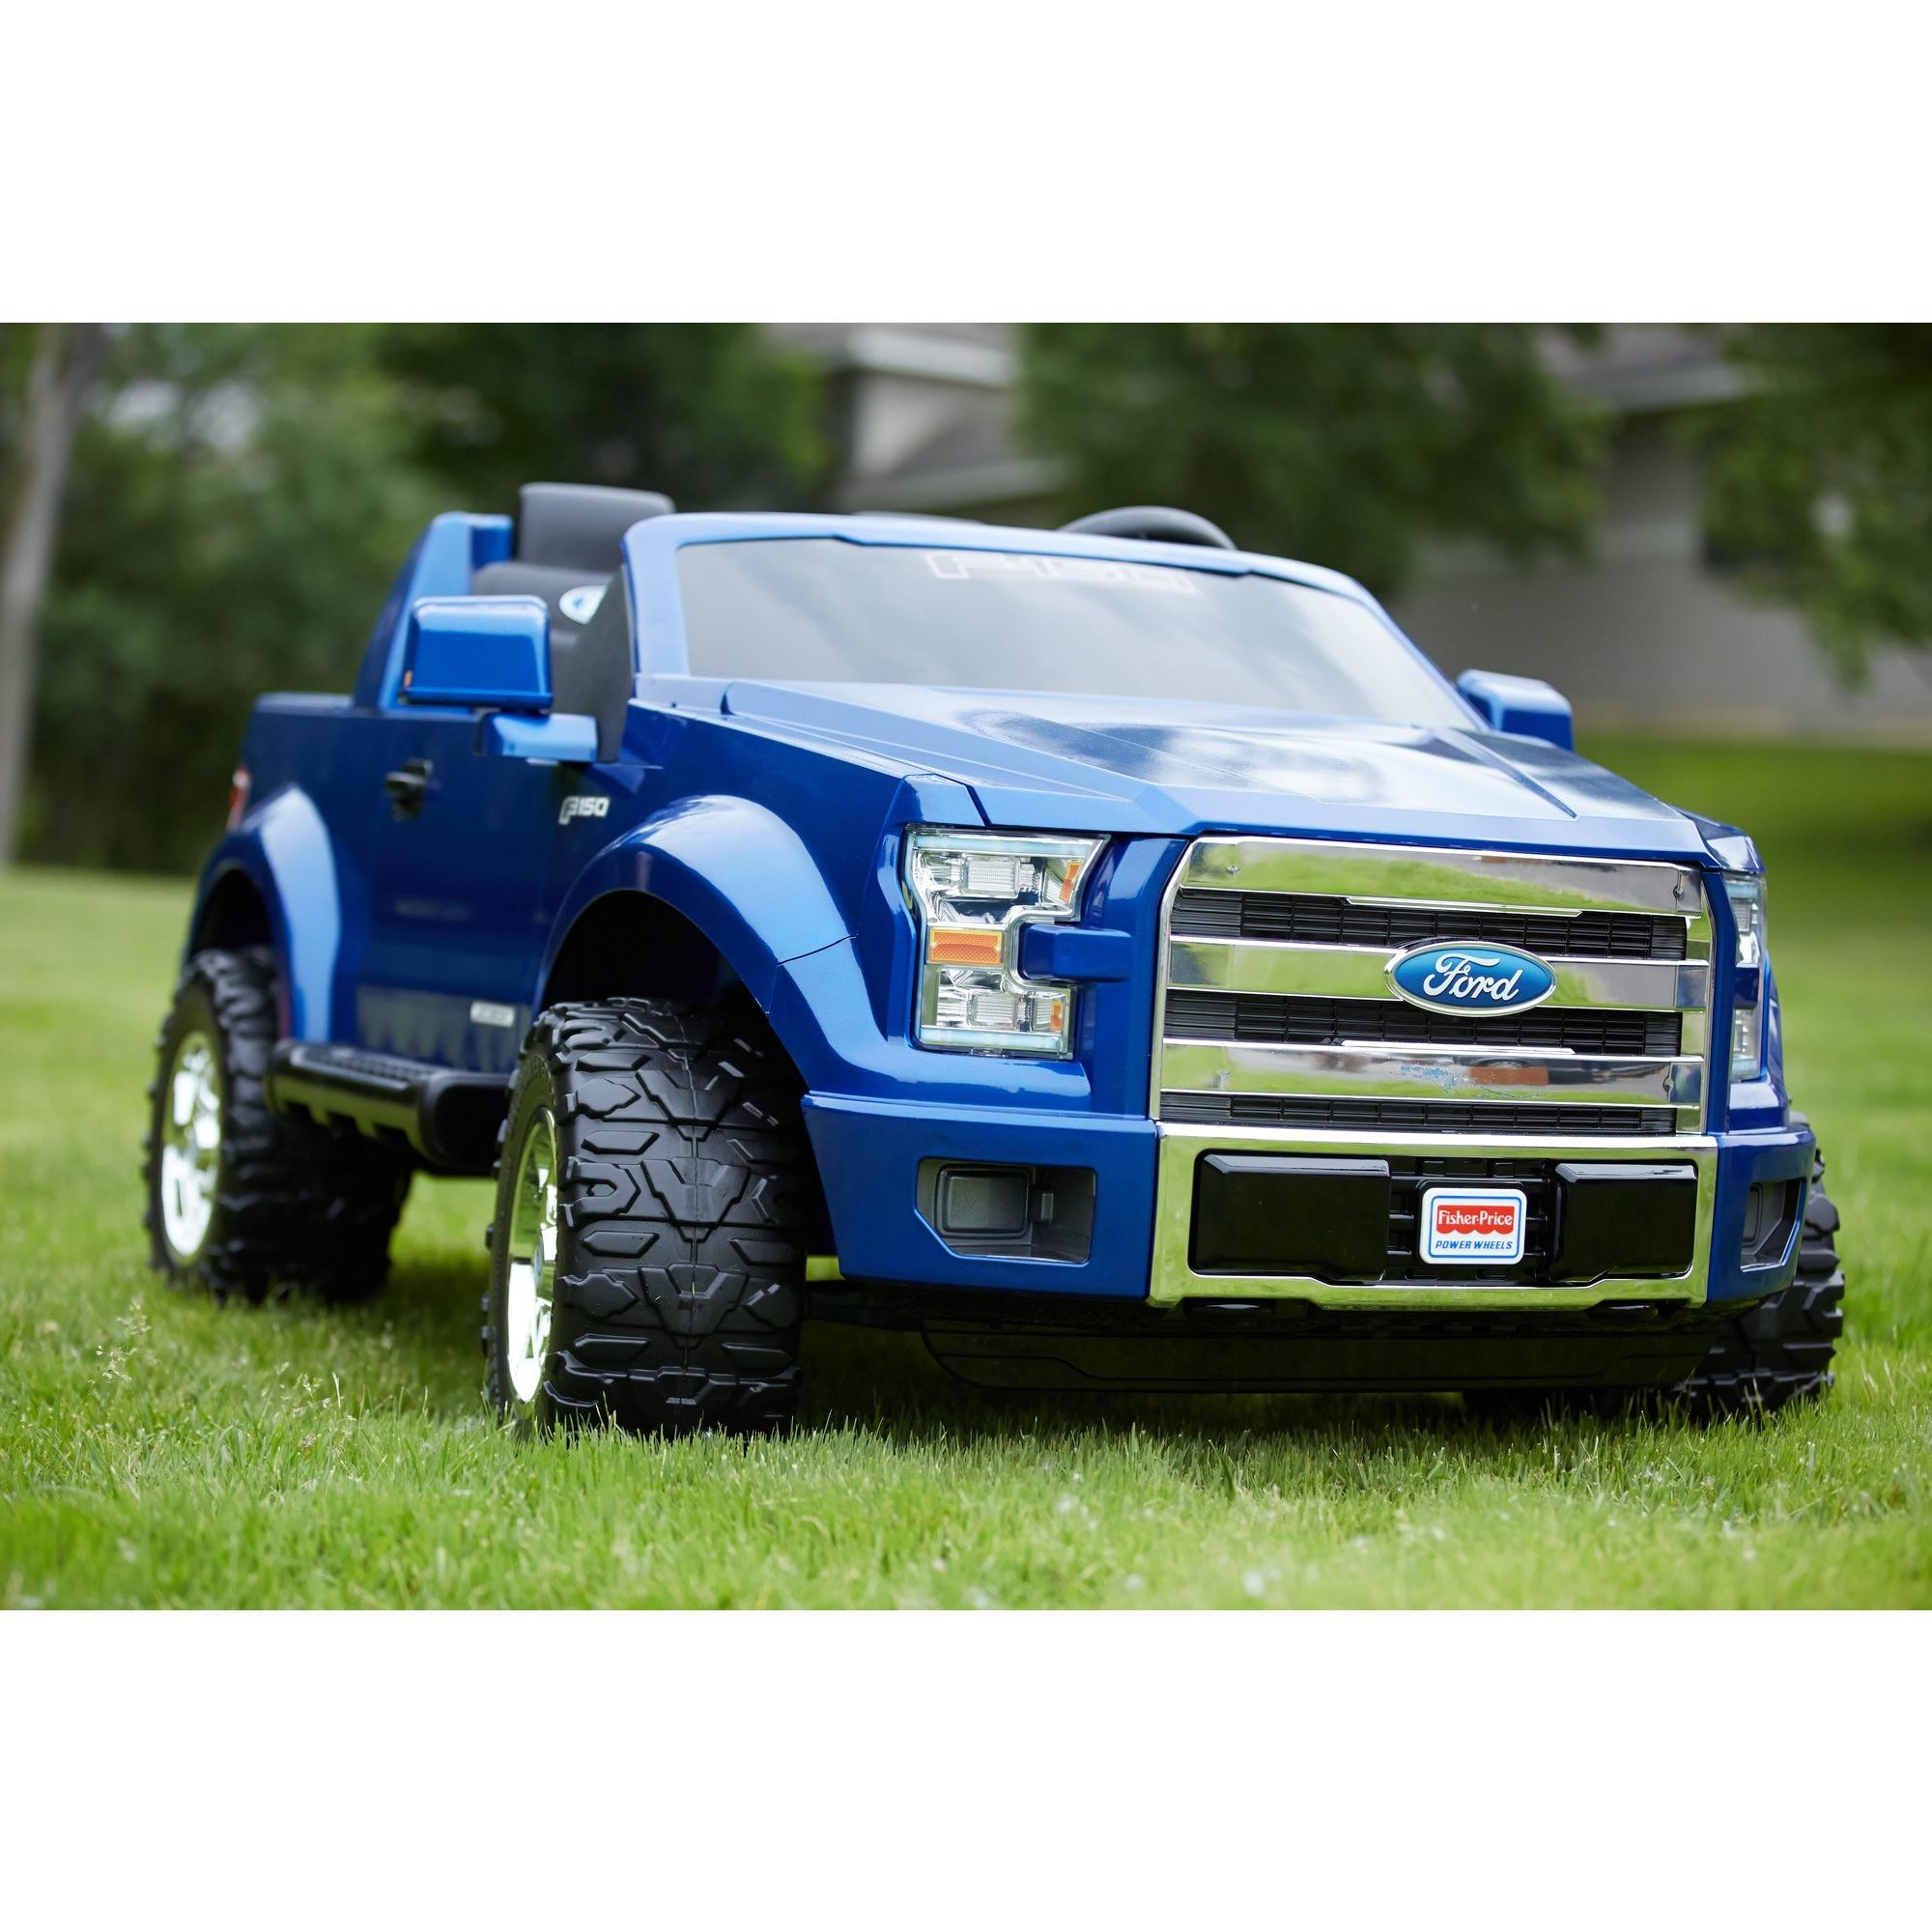 power wheels ford f 150 12 volt battery powered ride on walmart com rh walmart com Power Wheels Porsche Power Wheels Jeep